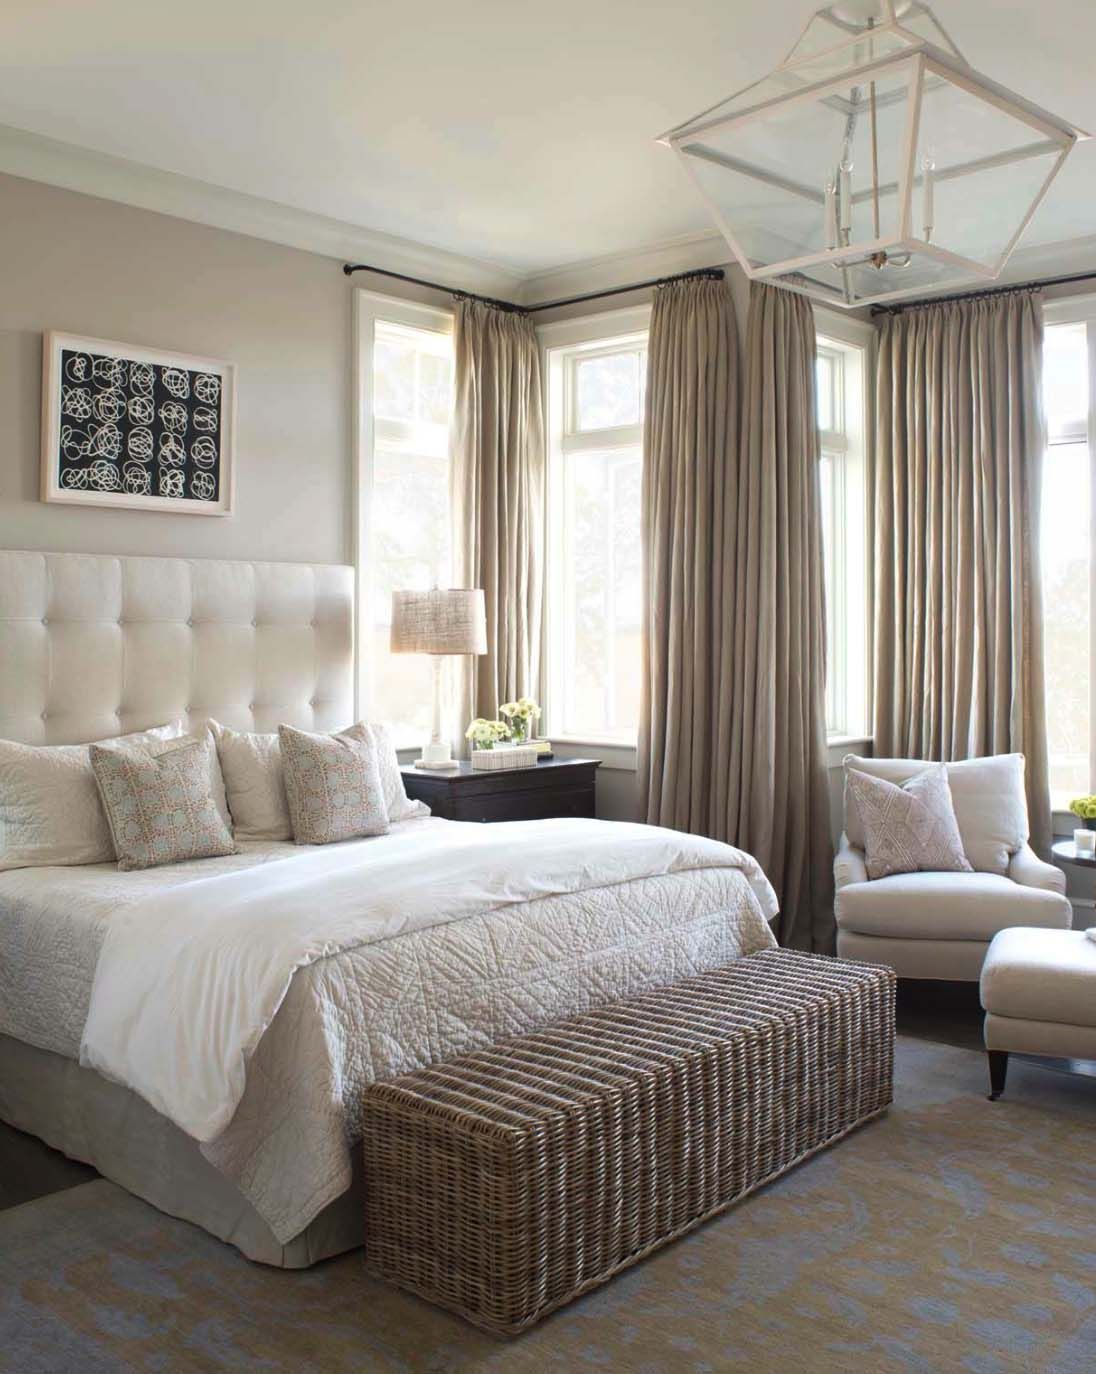 Romantic Bedroom Color Ideas: 35+ Spectacular Neutral Bedroom Schemes For Relaxation